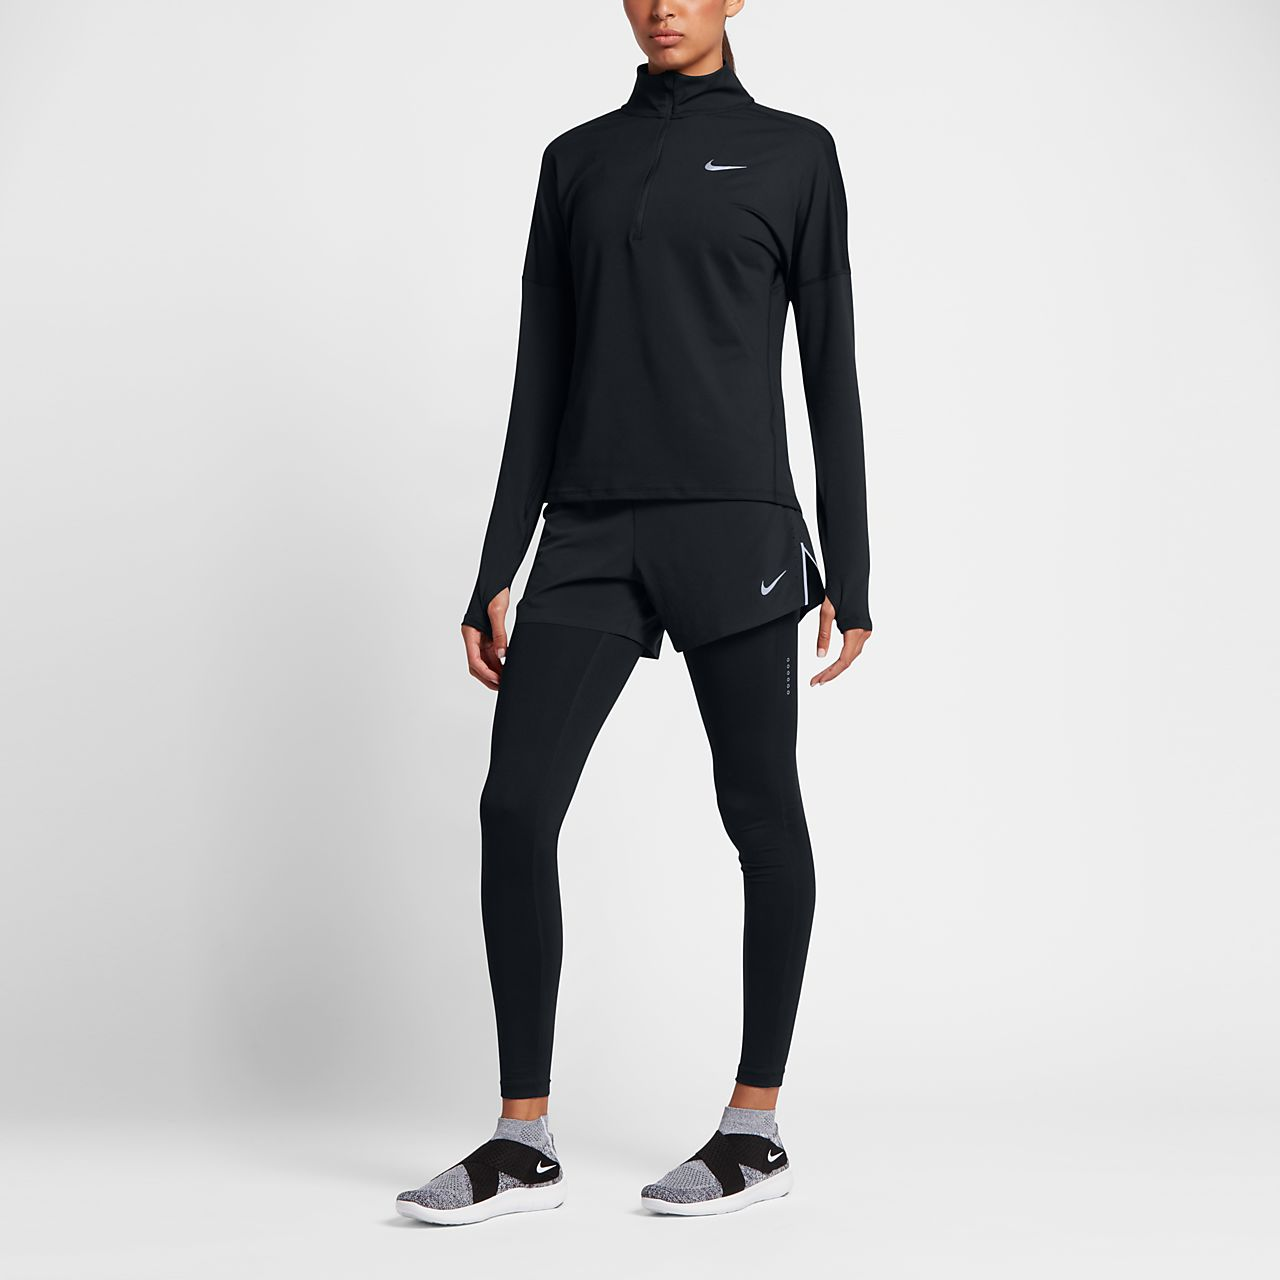 db75b39fa874 Nike Dri-FIT Women s Long-Sleeve Running Half-Zip Top. Nike.com GB